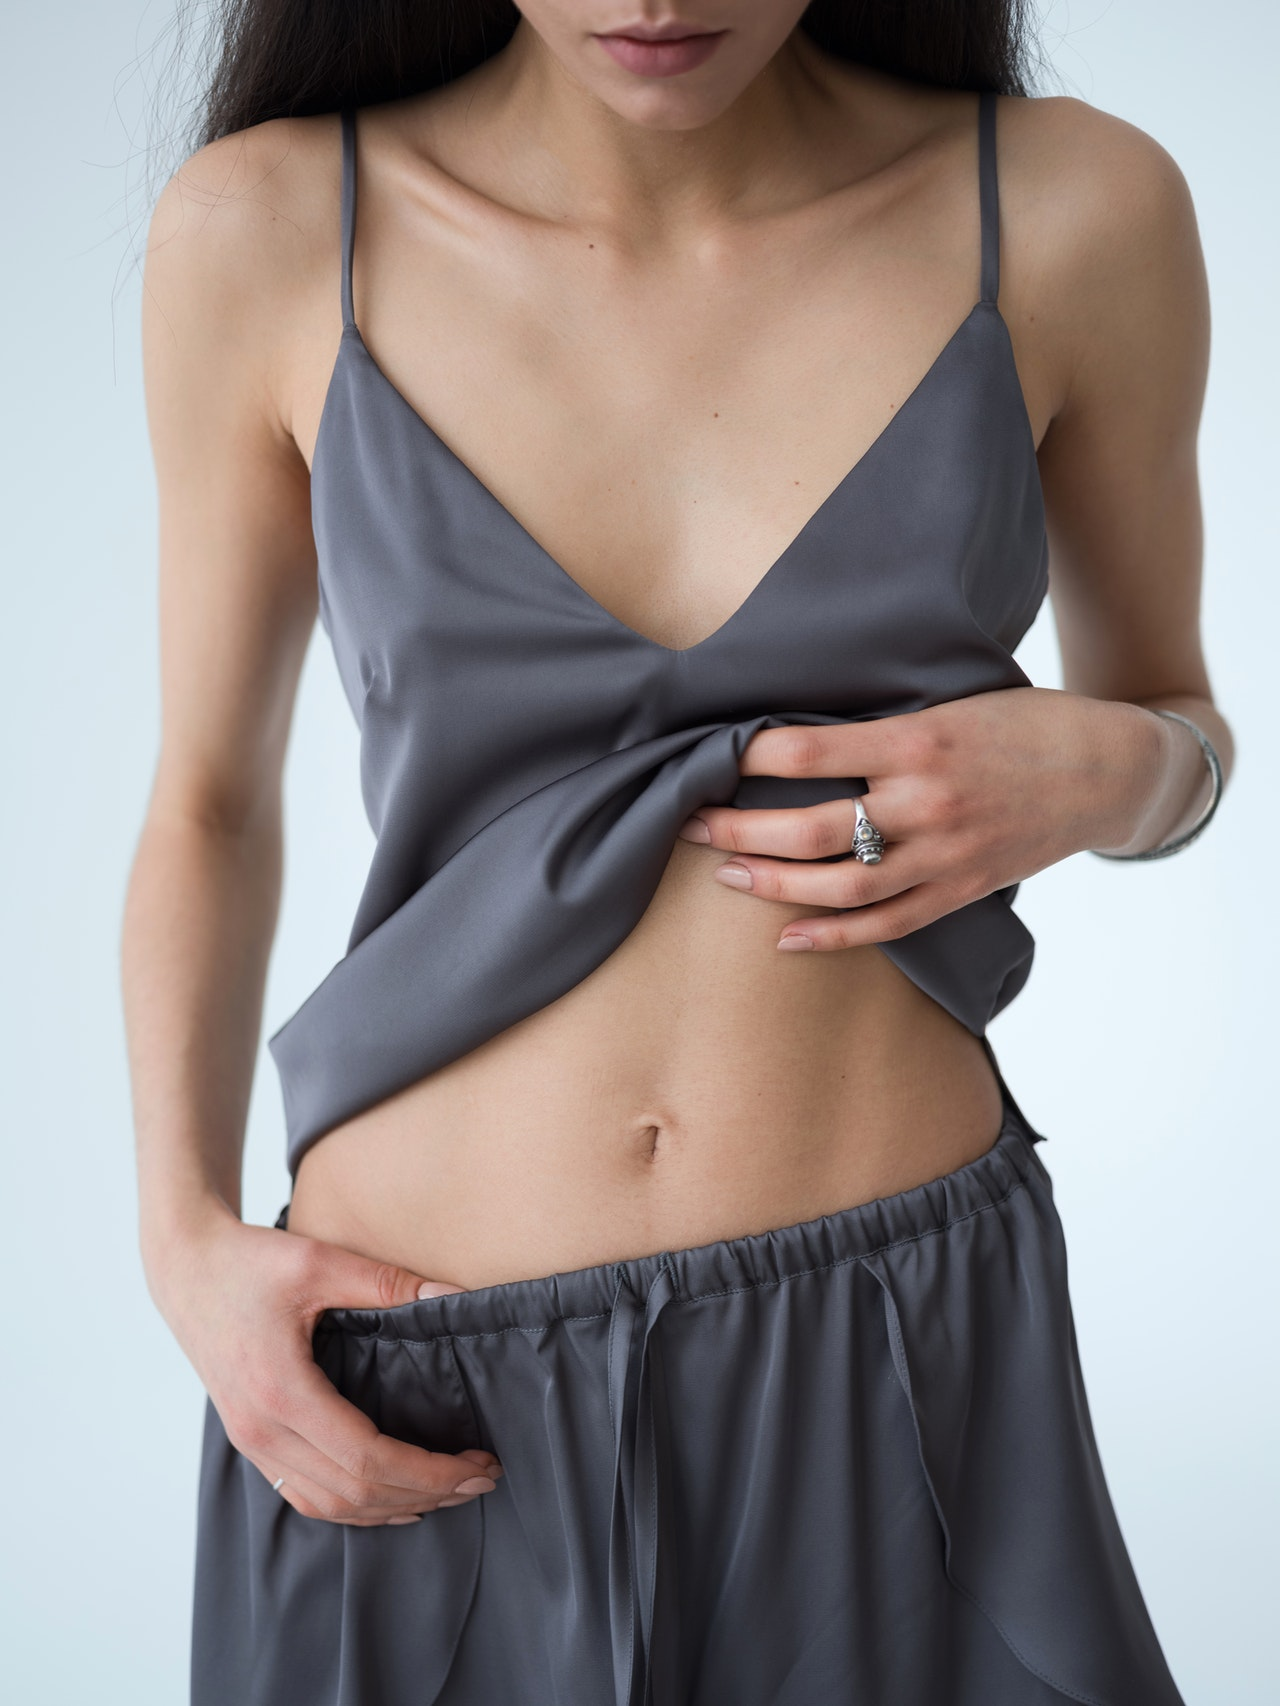 Girl in grey clothing showing stomach